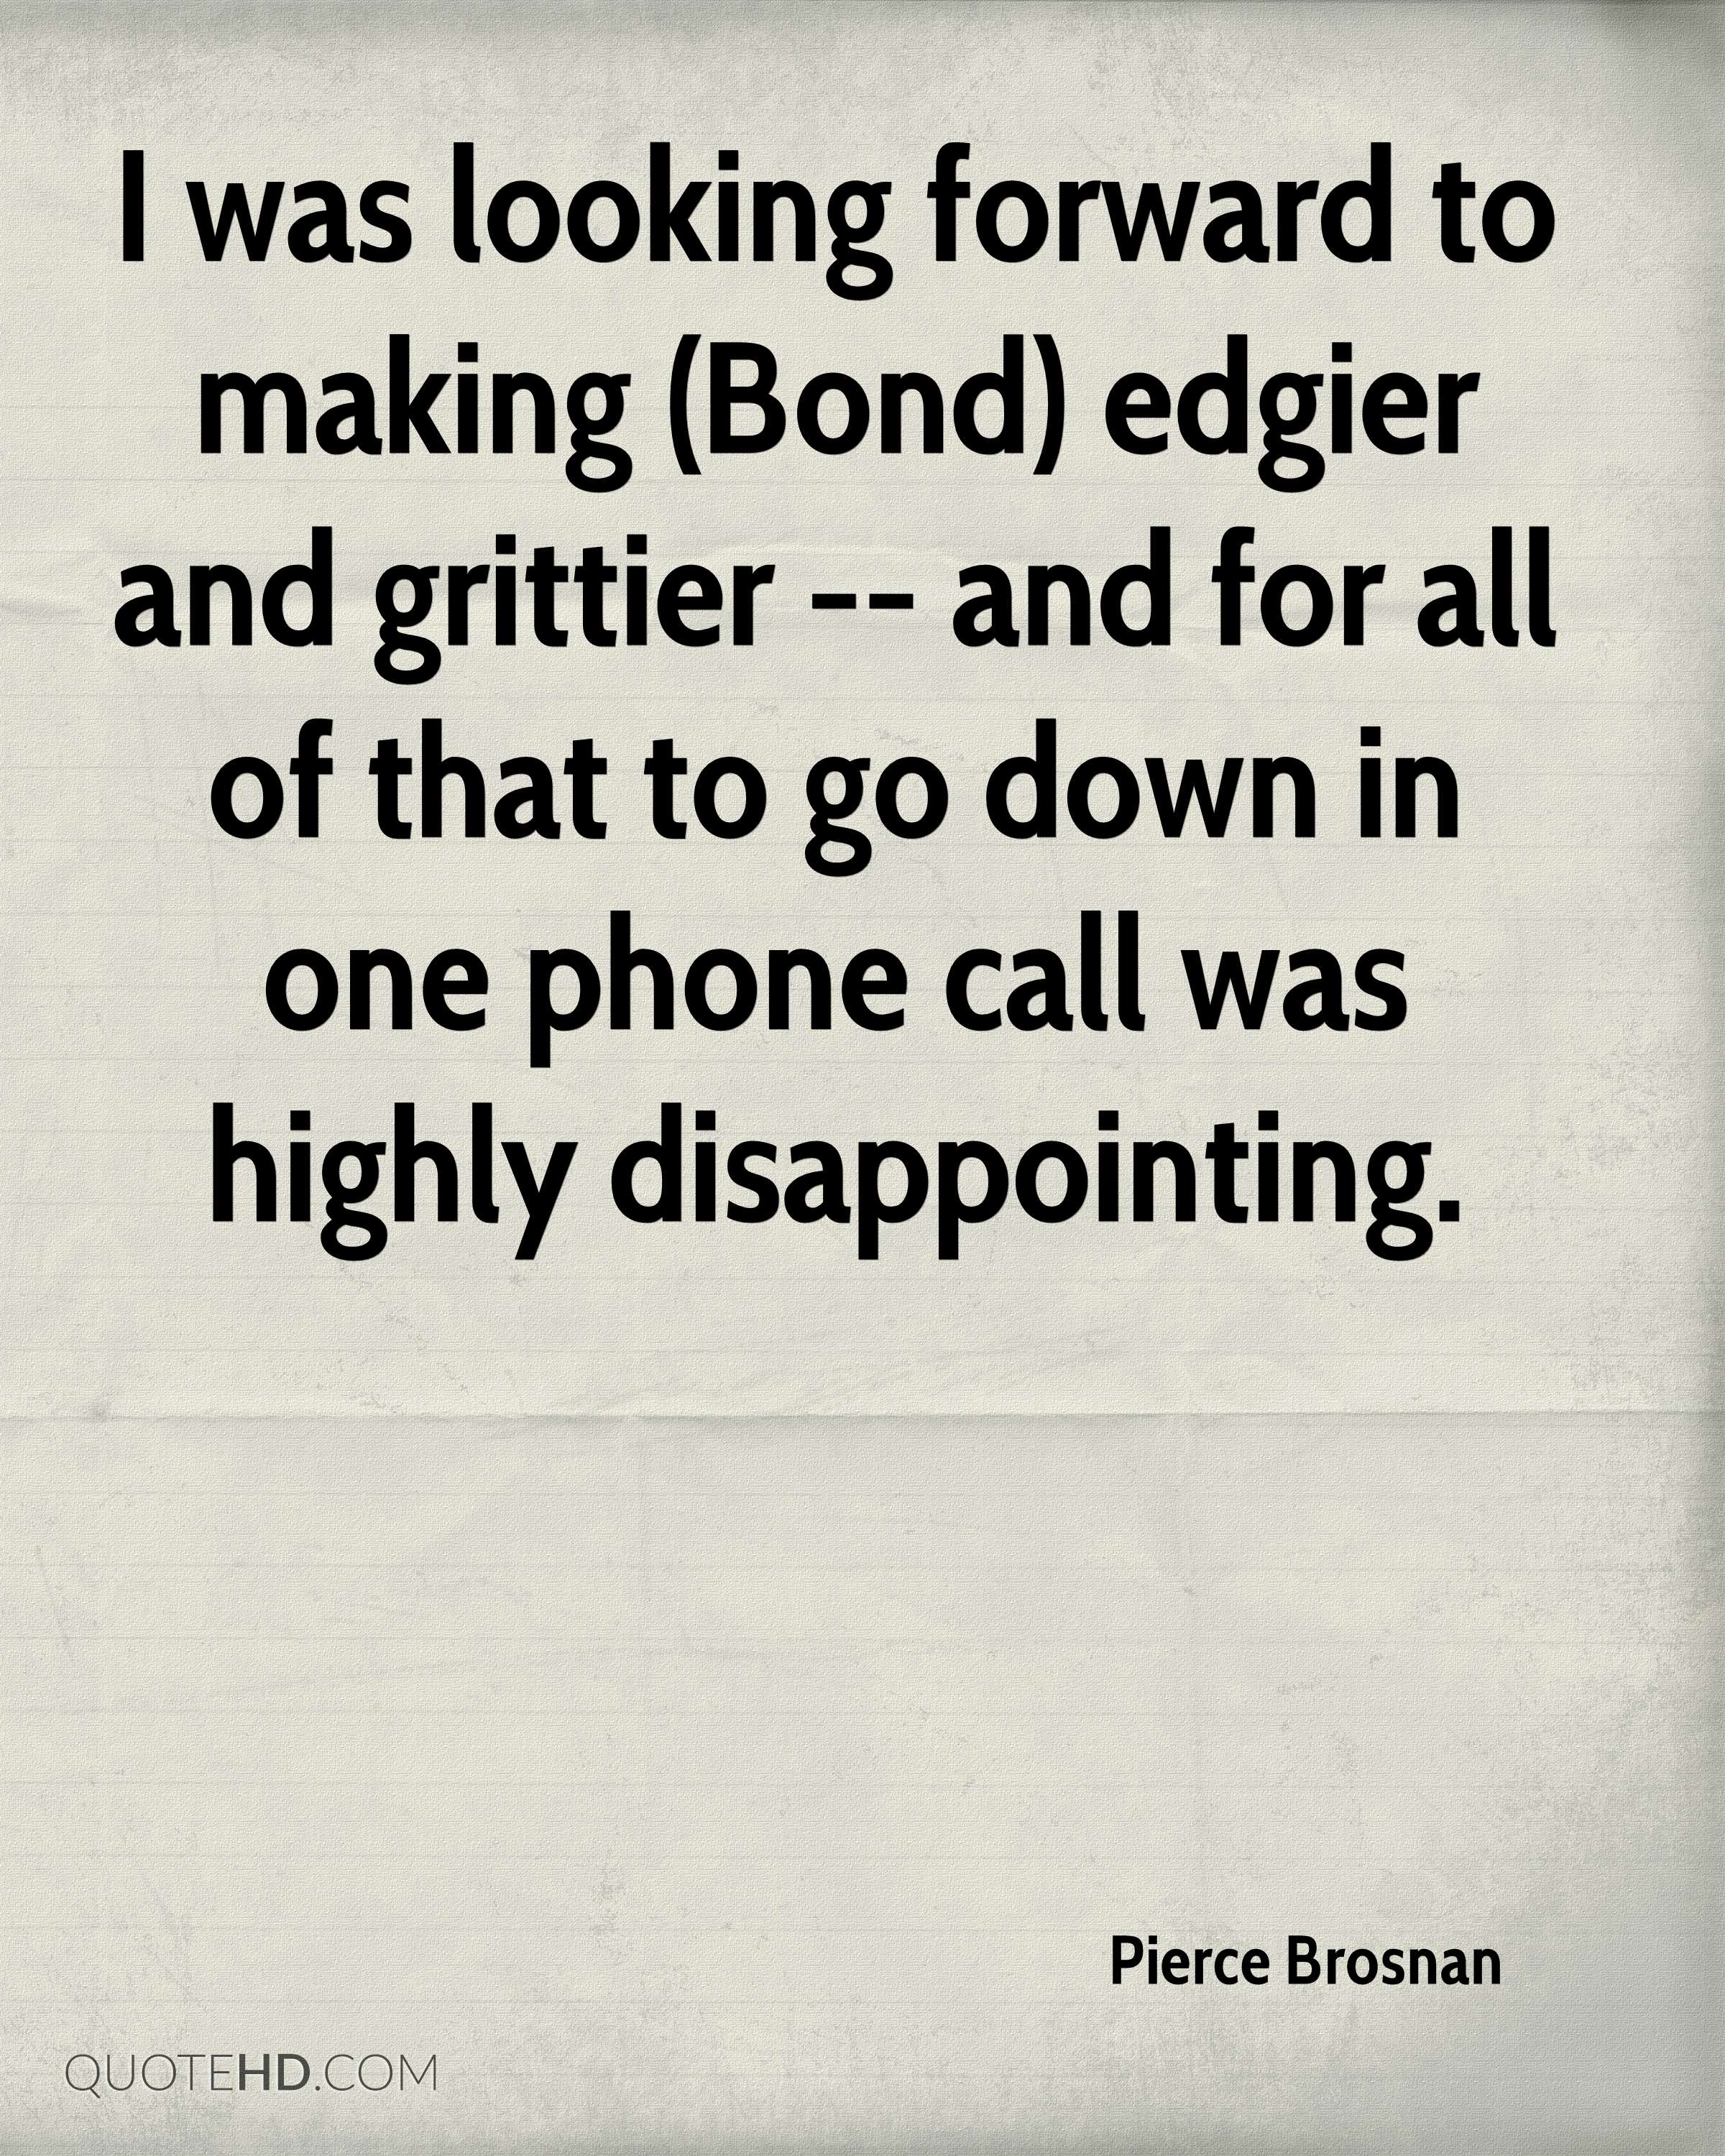 I was looking forward to making (Bond) edgier and grittier -- and for all of that to go down in one phone call was highly disappointing.